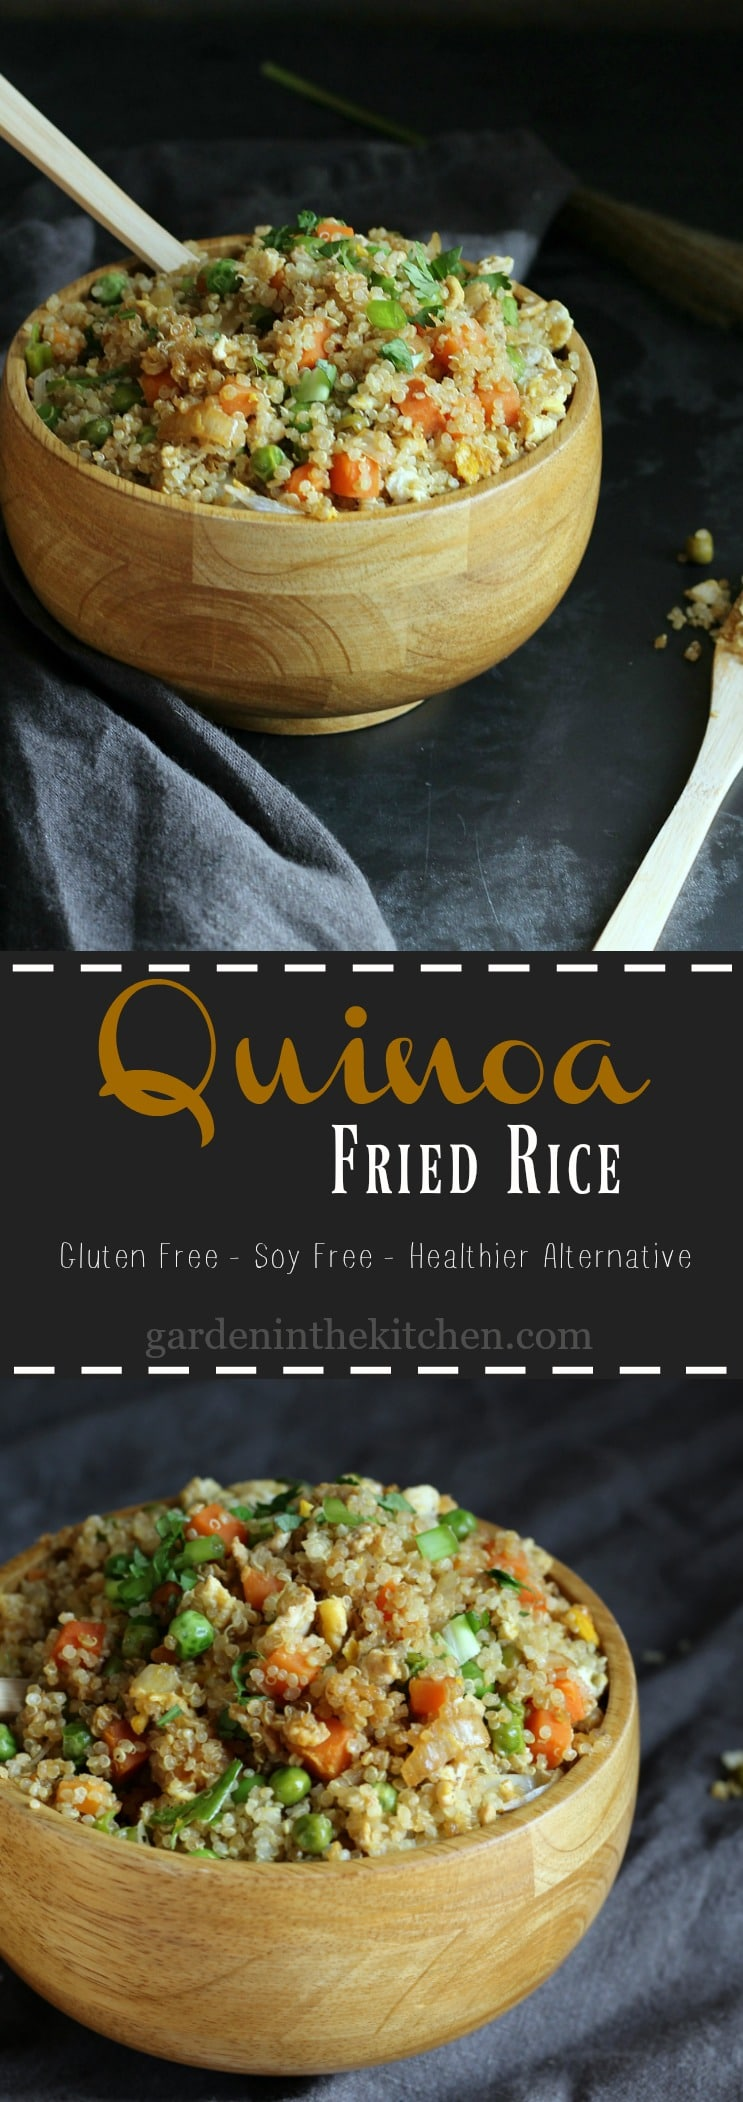 quinoa-fried-rice-long